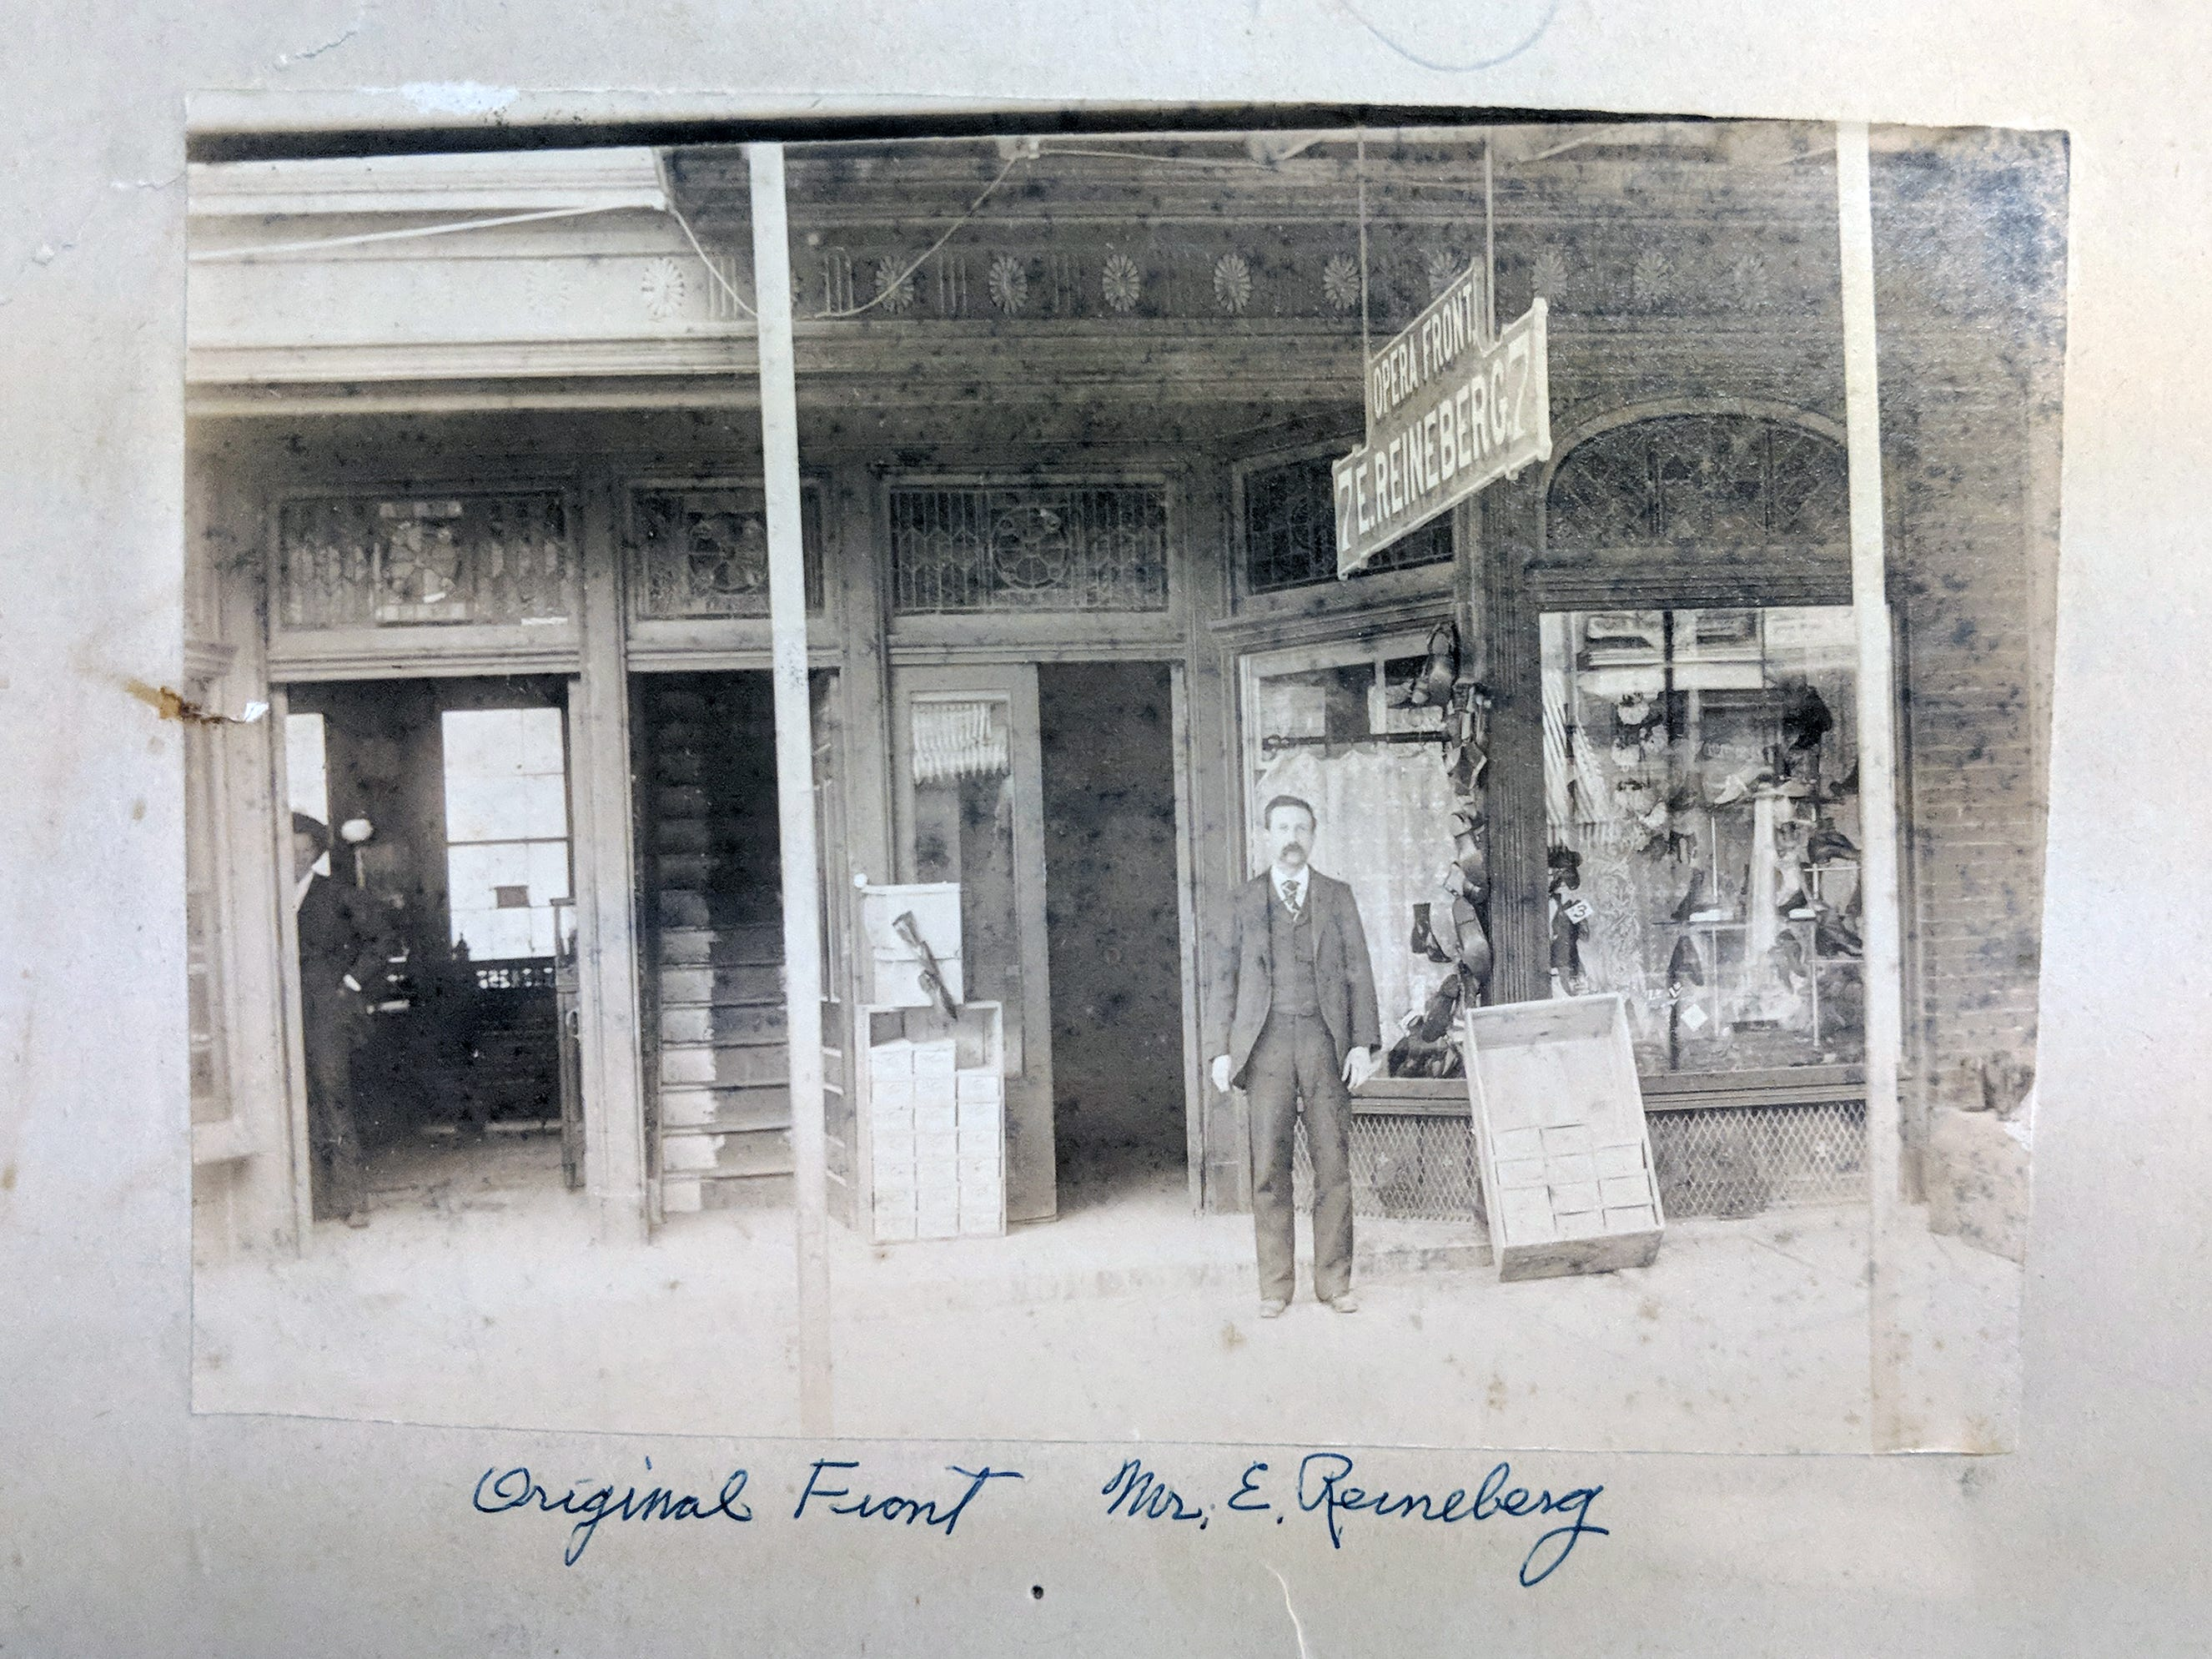 This is the original Reineberg's shoe store that opened in 1877.